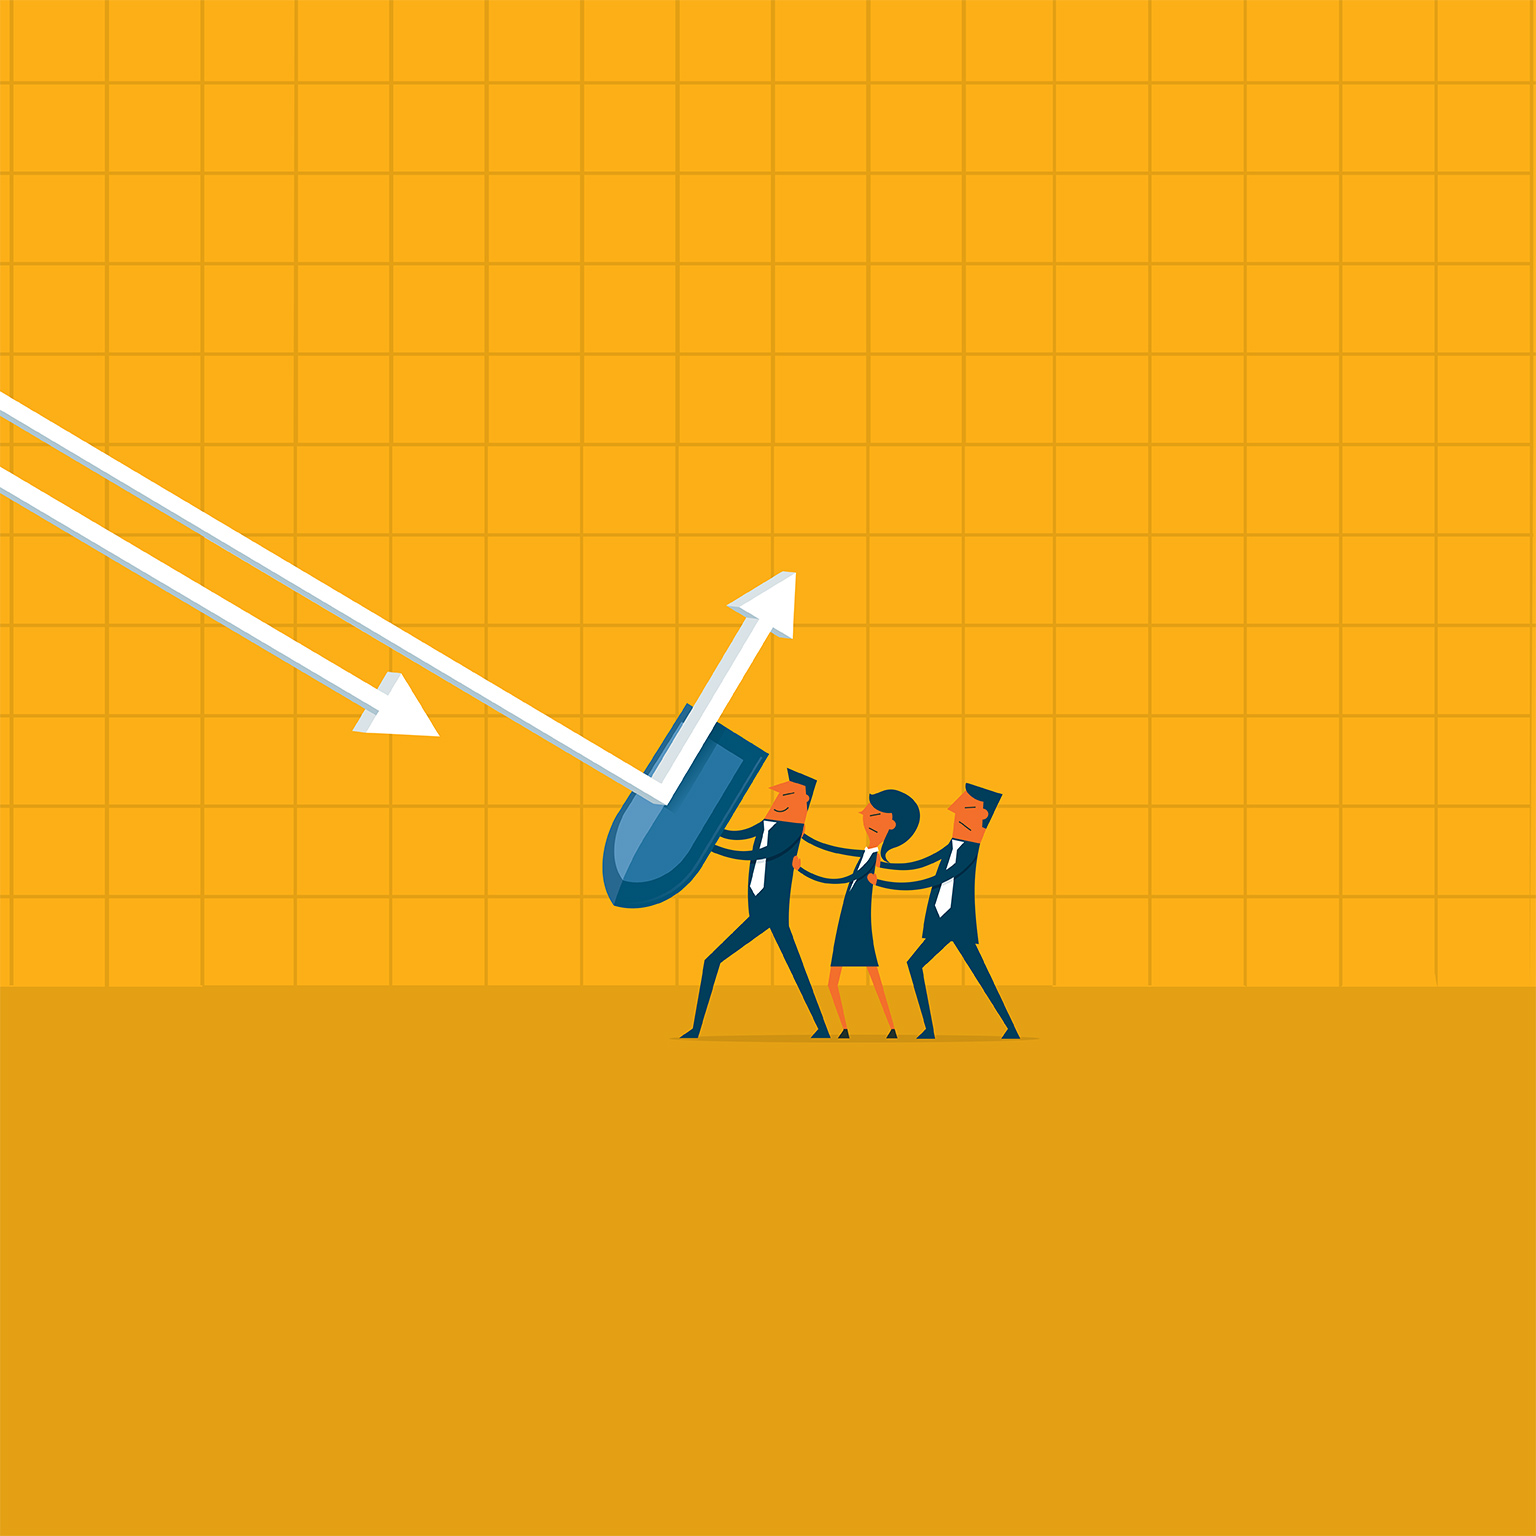 McKinsey & Company share a better way to anticipate [economic] downturns